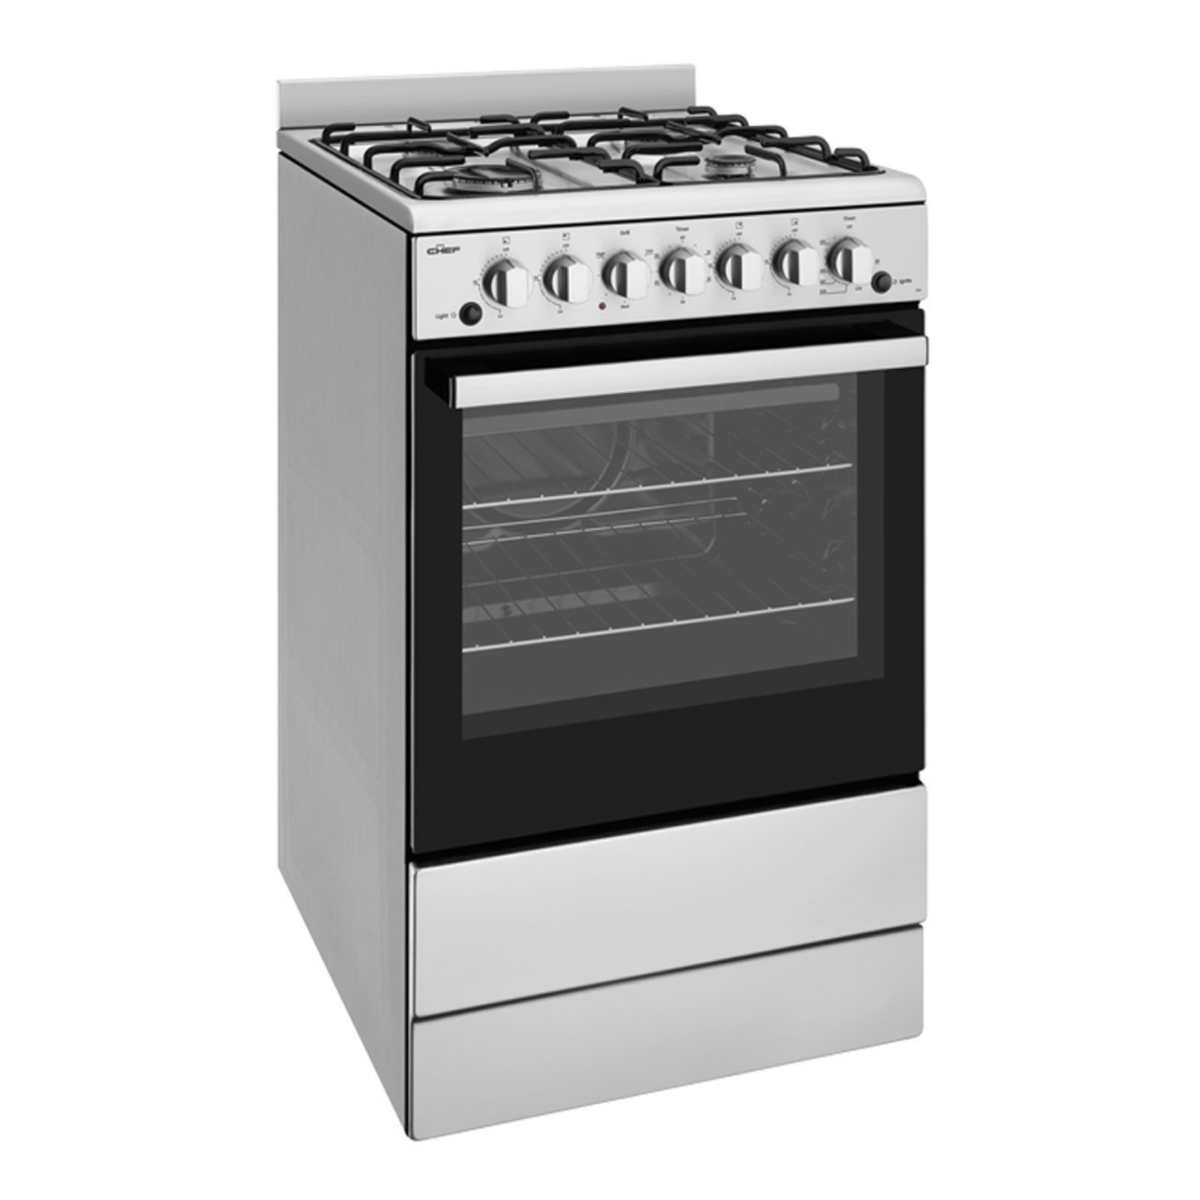 Chef CFG504SBNG 54cm Freestanding Natural Gas Oven/Stove 86463